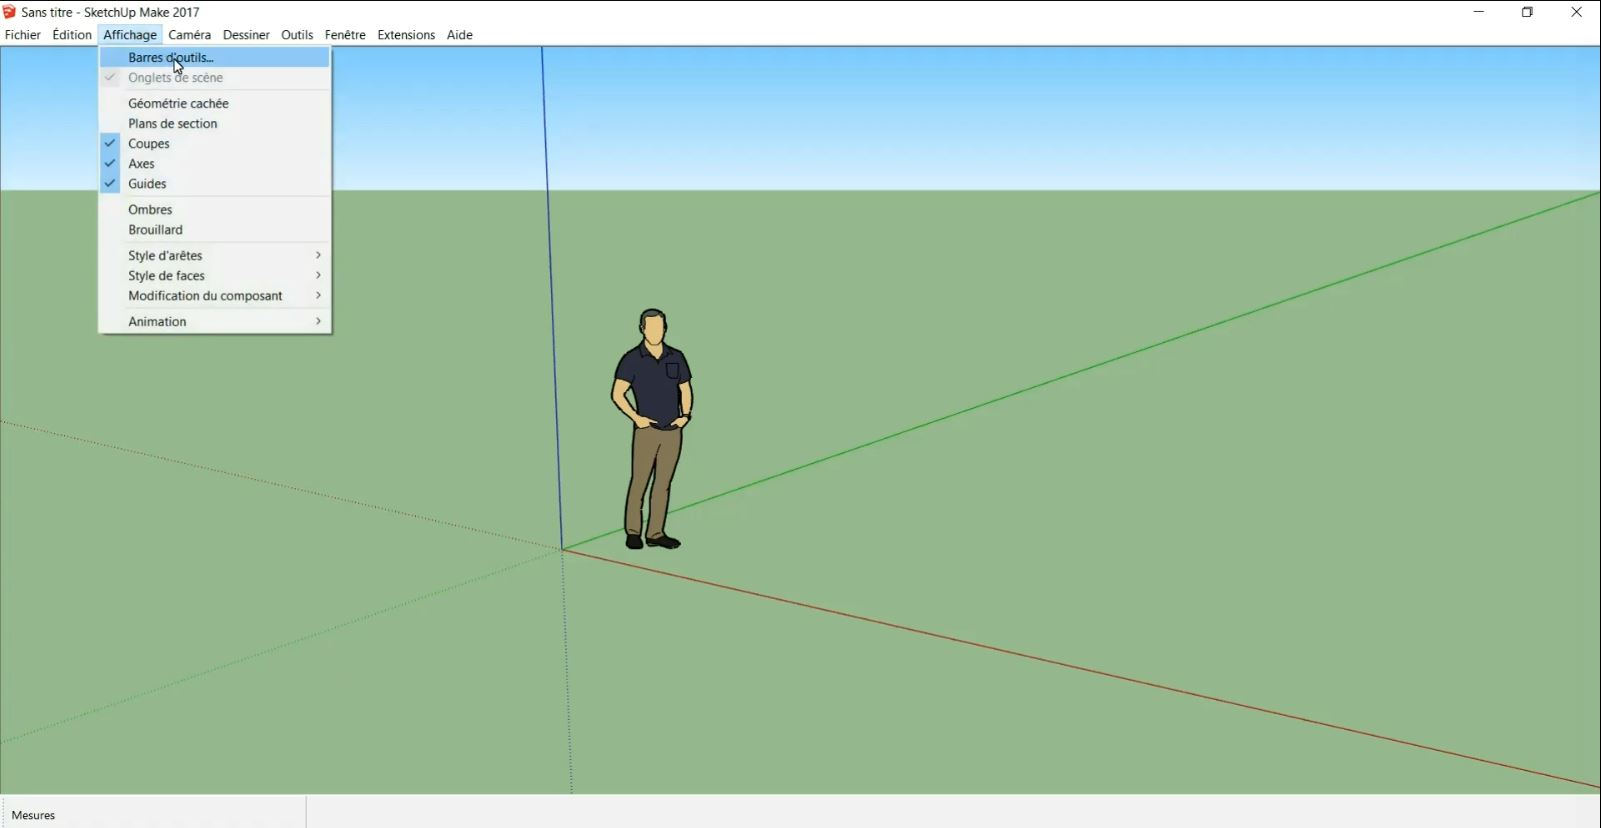 Barre d'outils sketchup